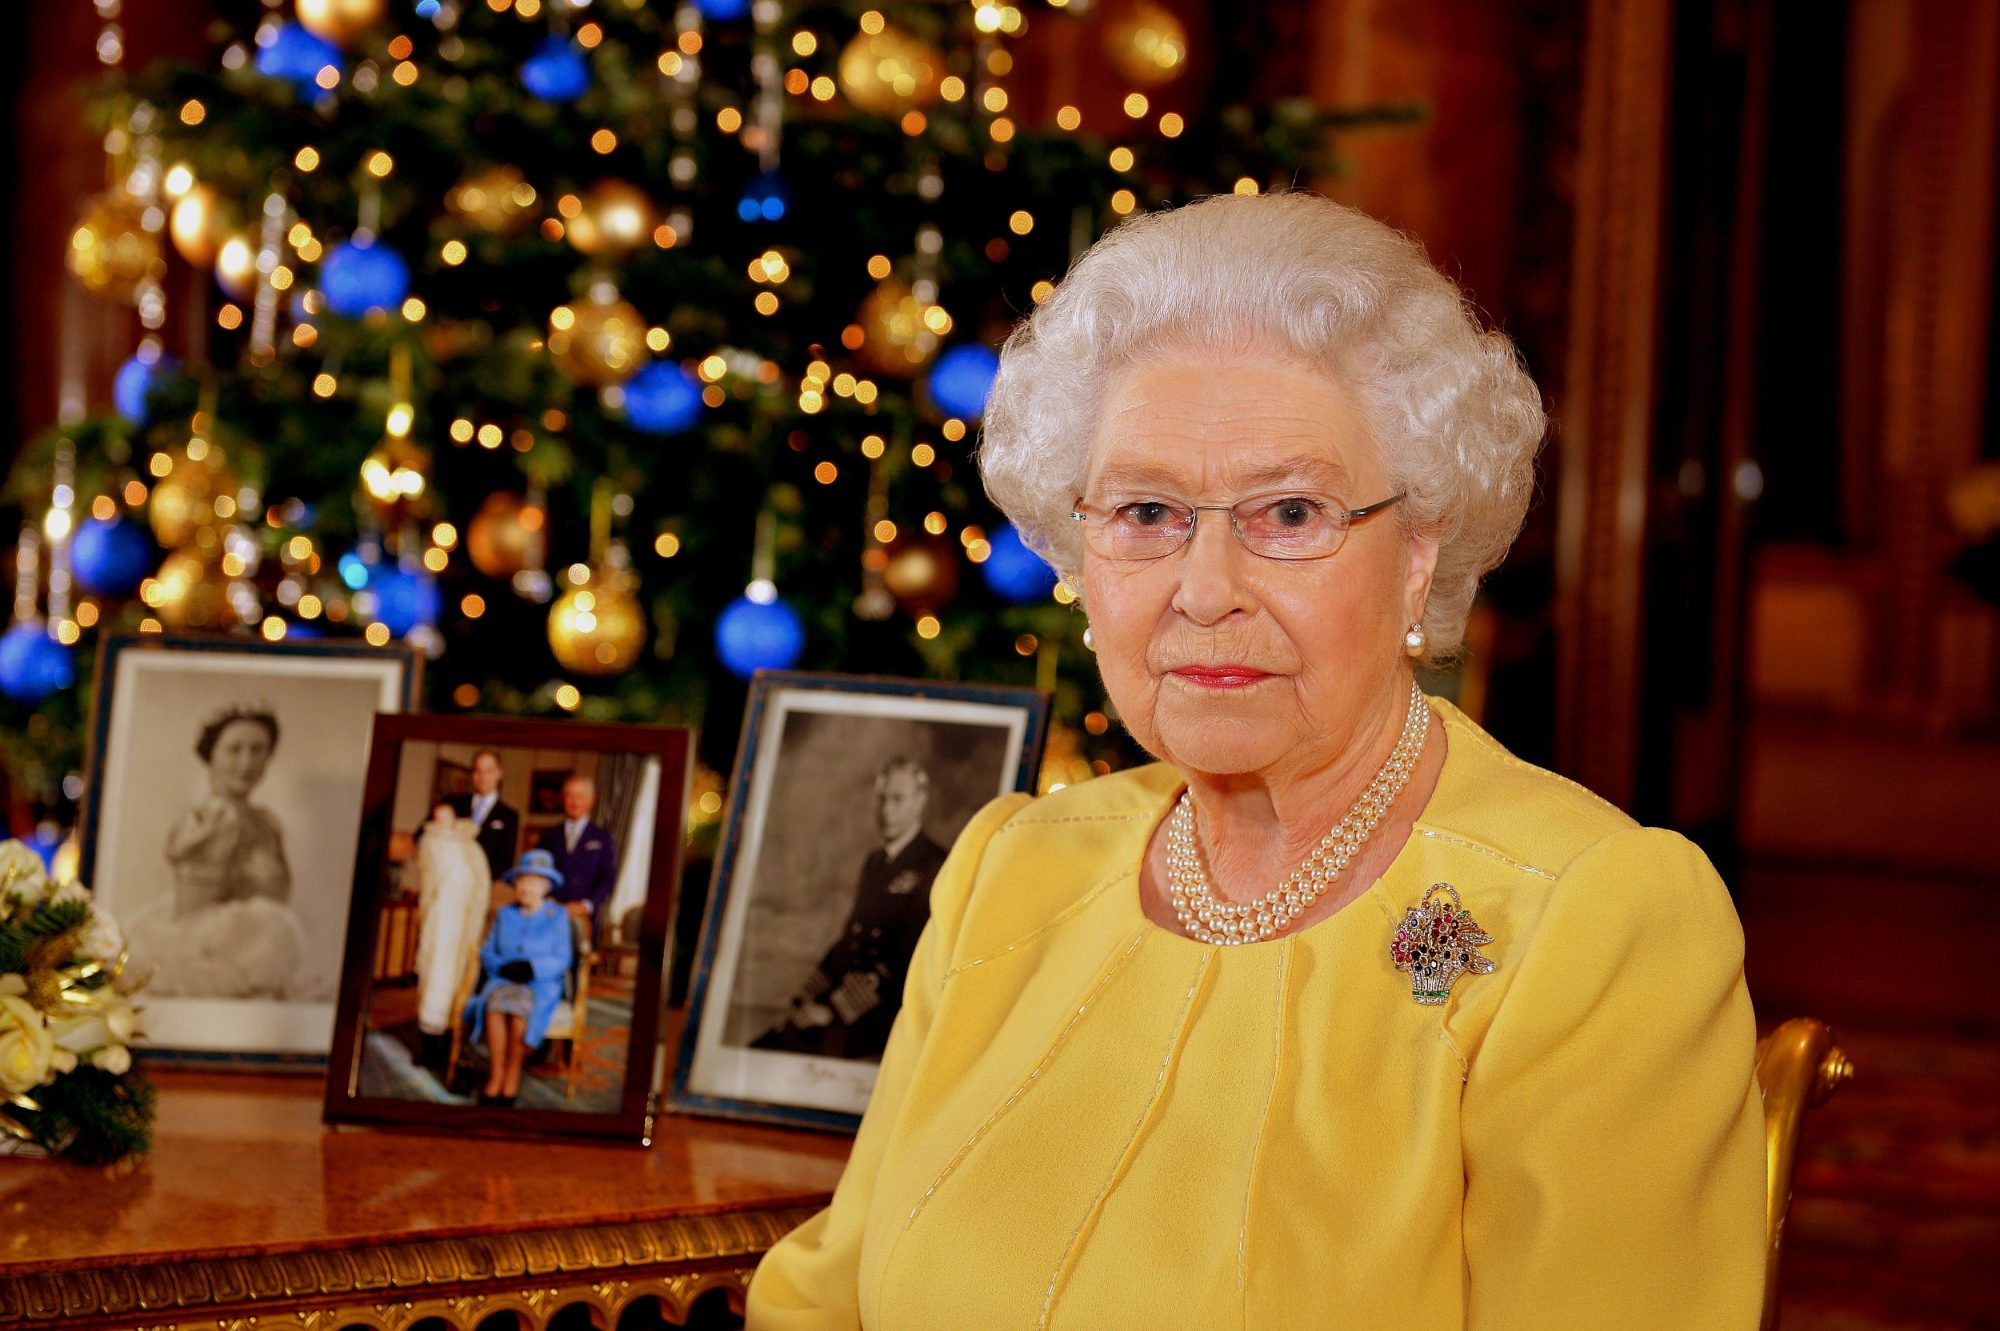 The Queen's 2013 Christmas Broadcast